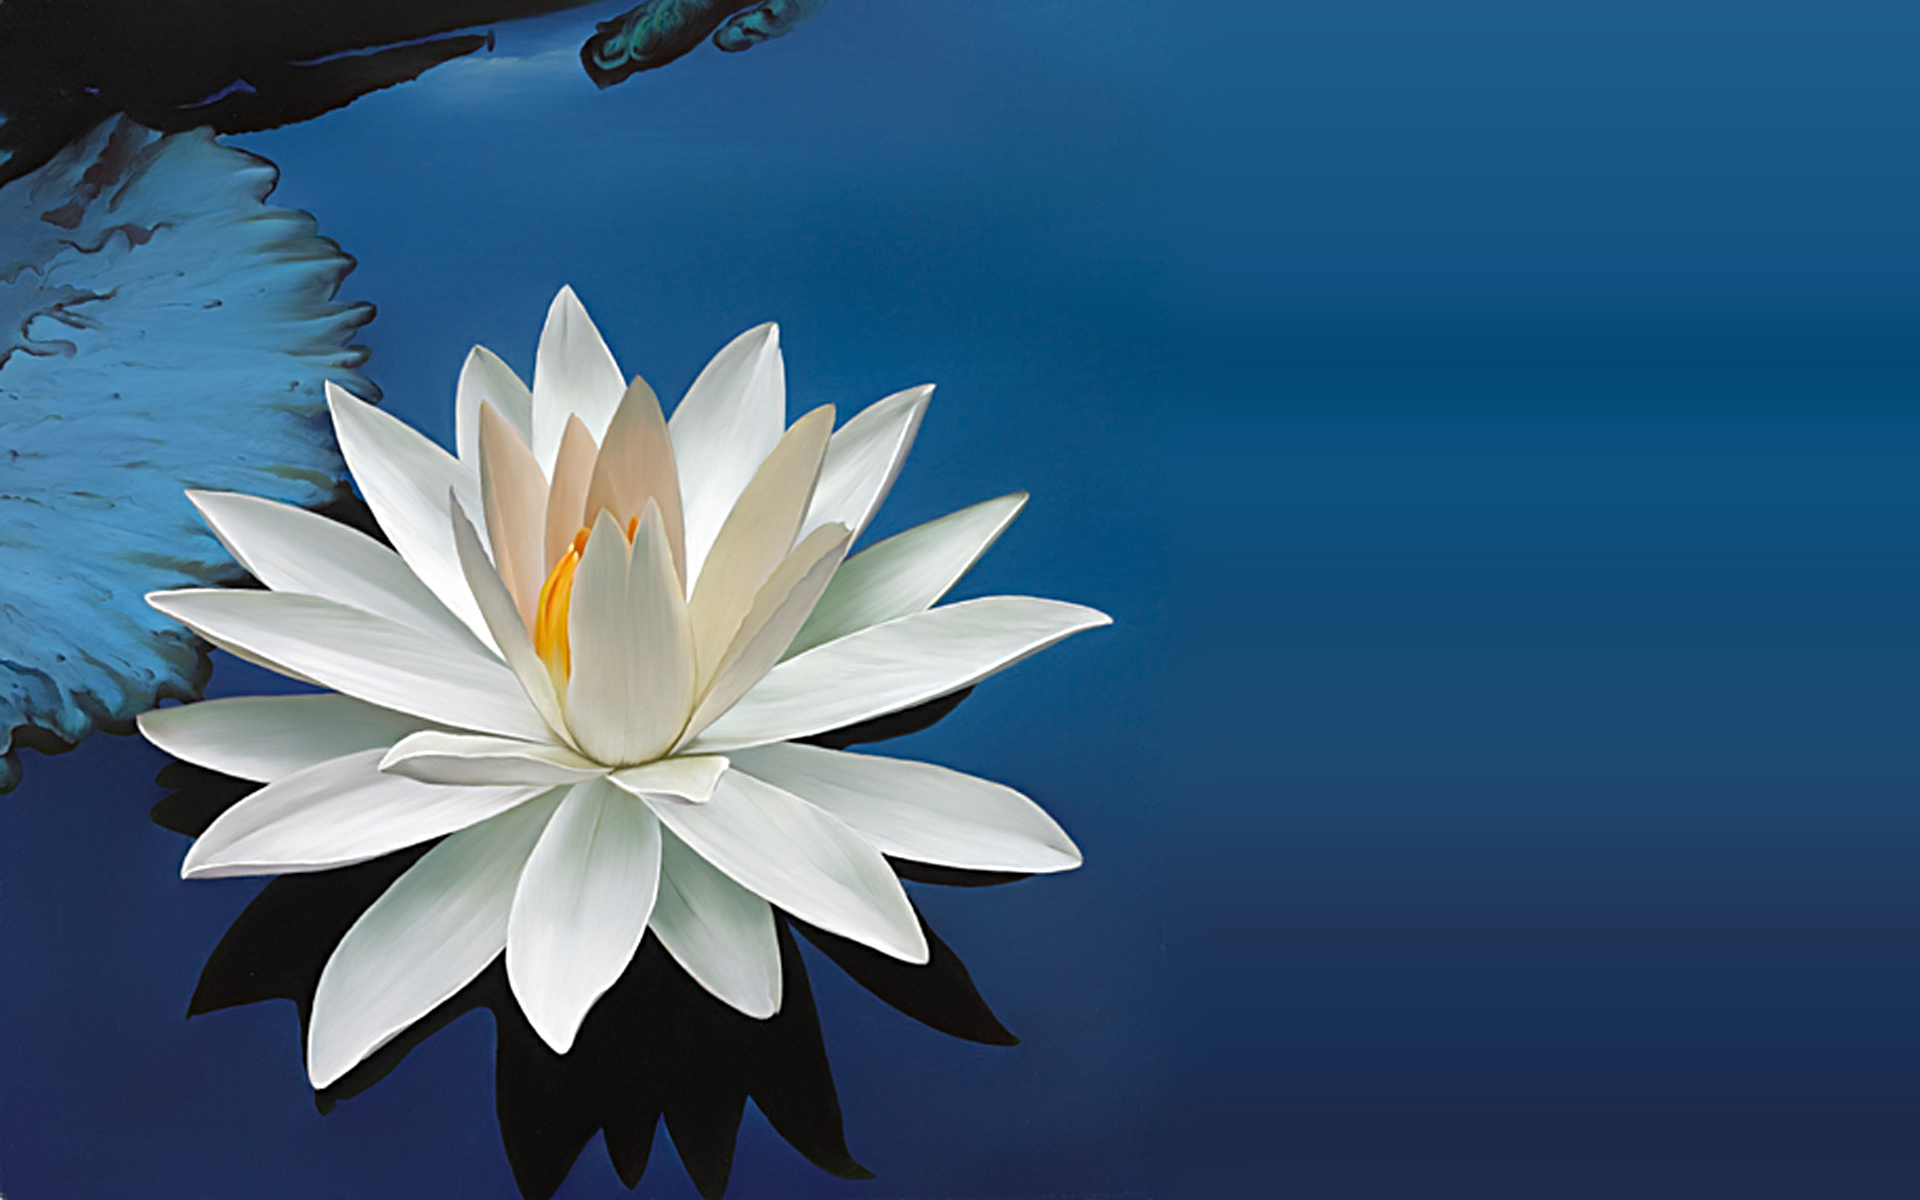 50959543 - the white lotus flower reflect with water in ...